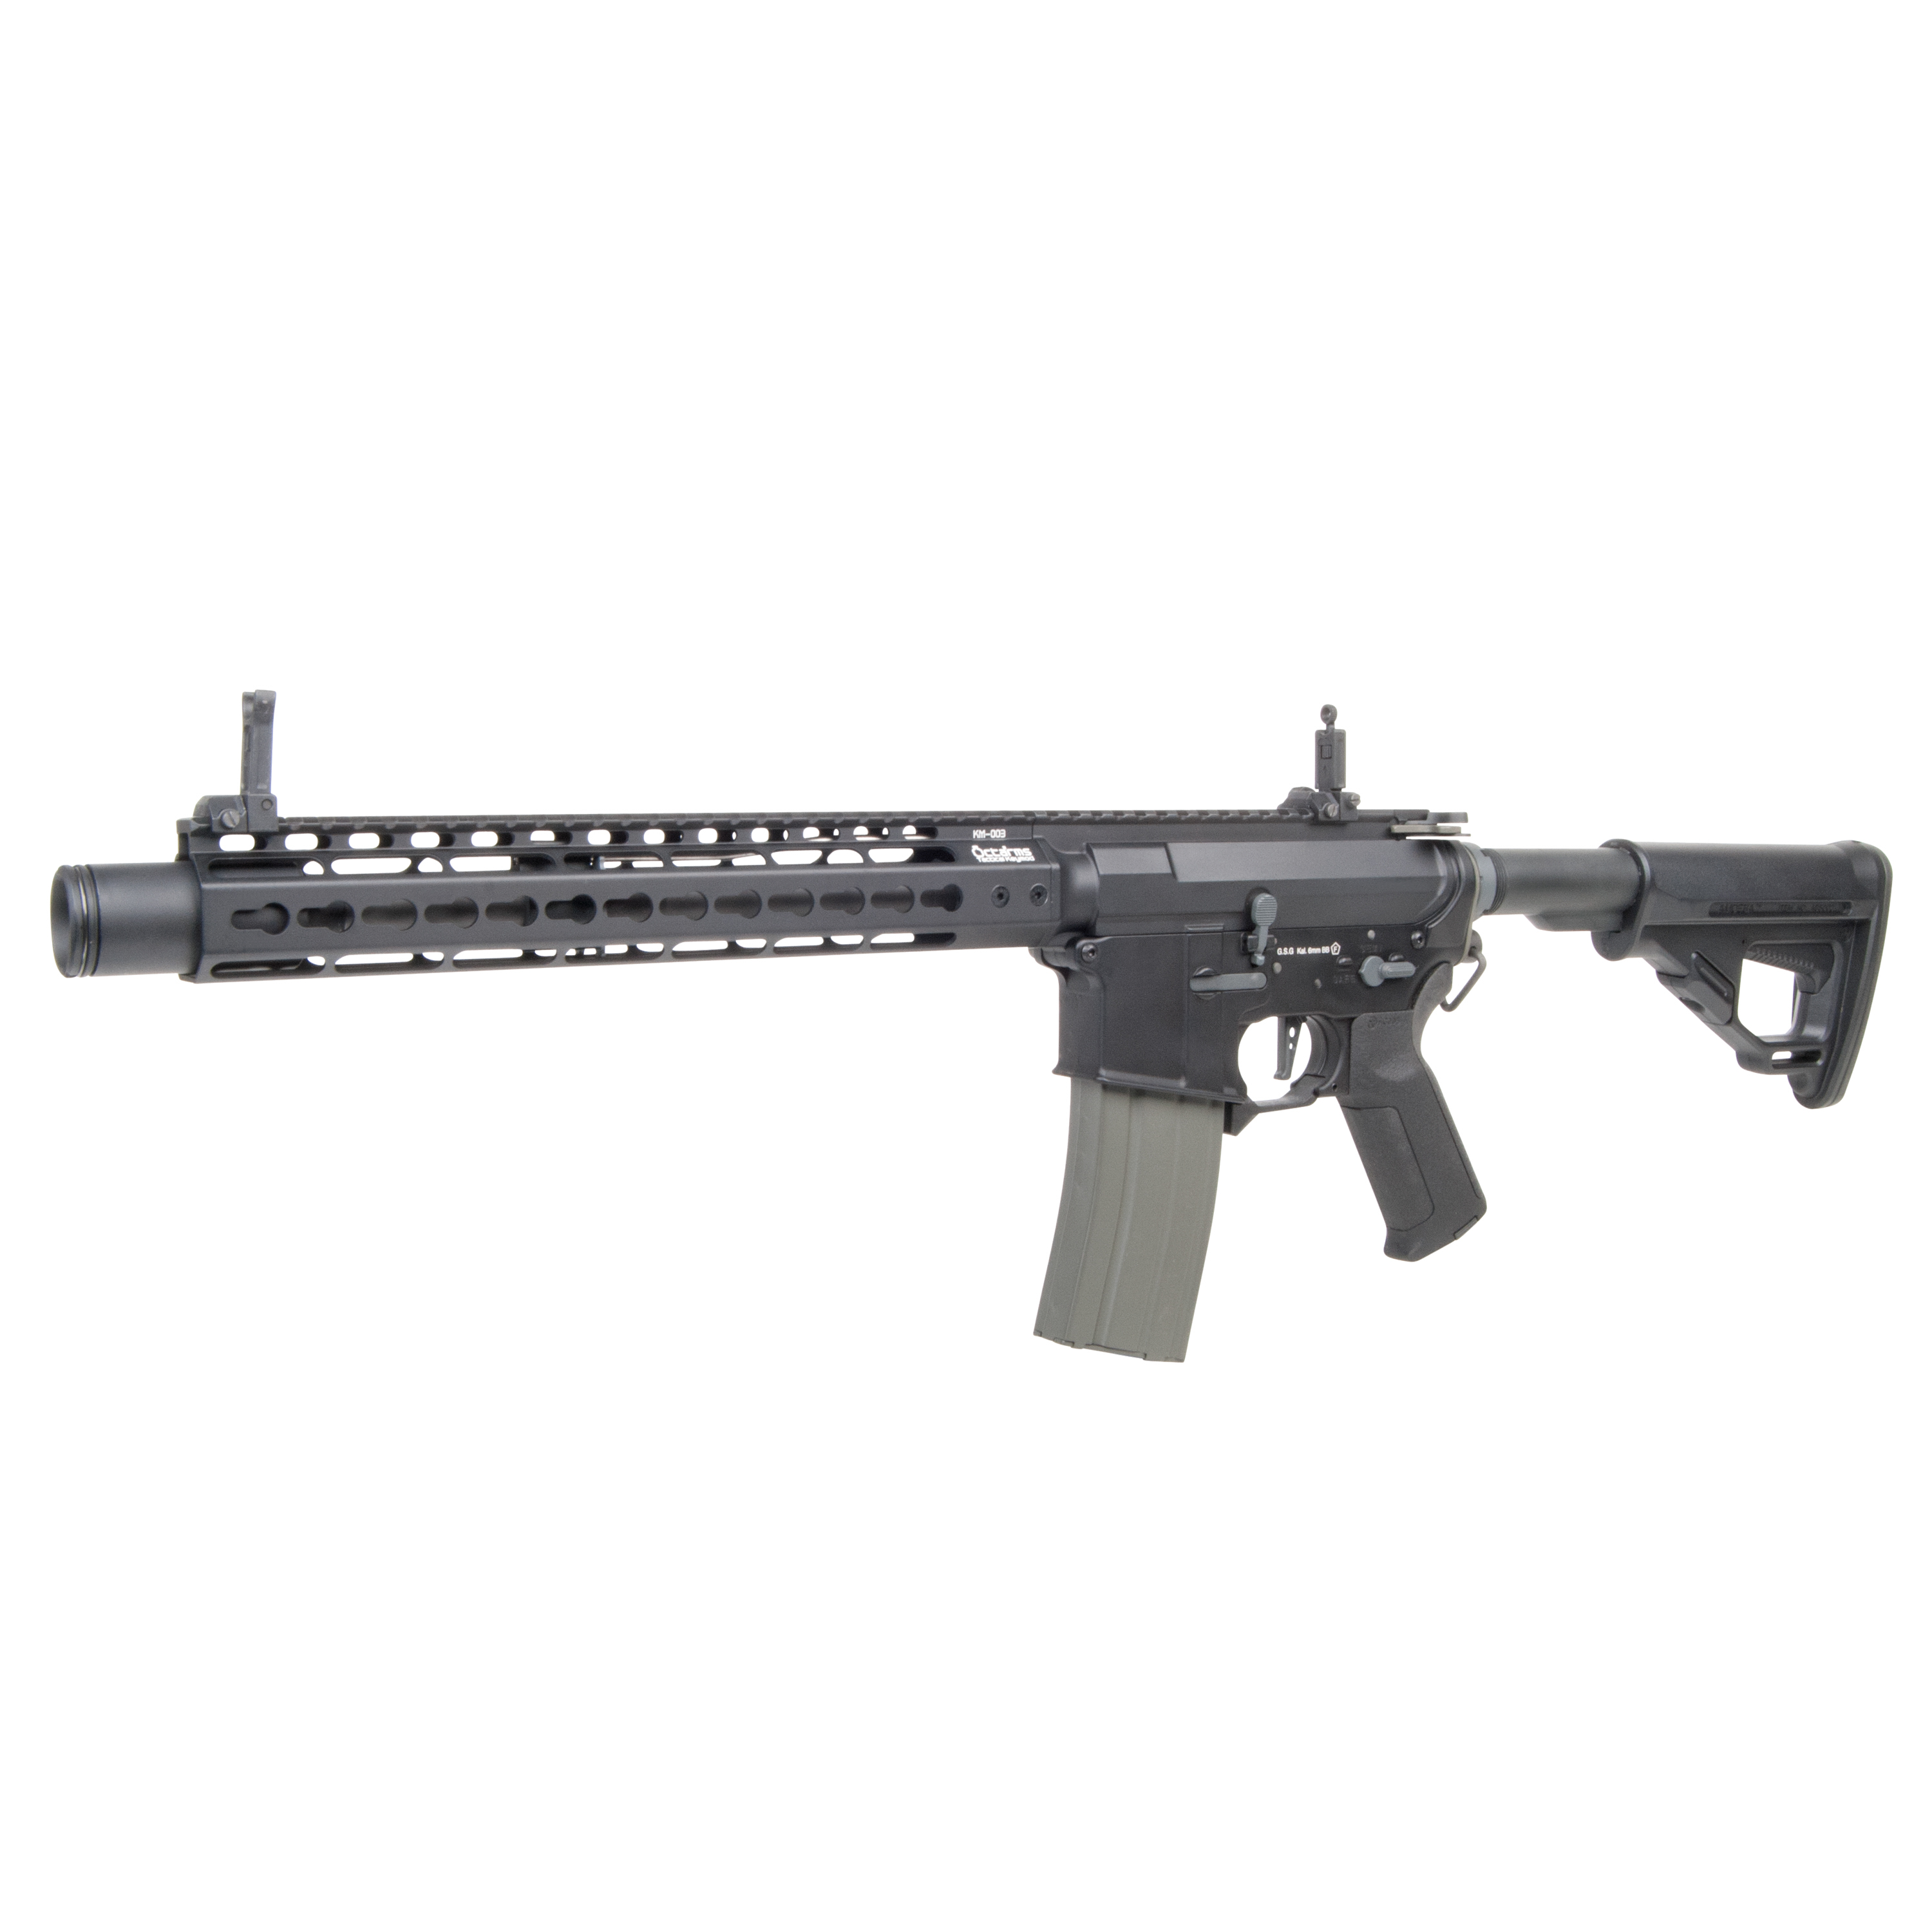 Ares Airsoft Octaarms X Amoeba Pro M4 KM12 1.3 J S-AEG schwarz